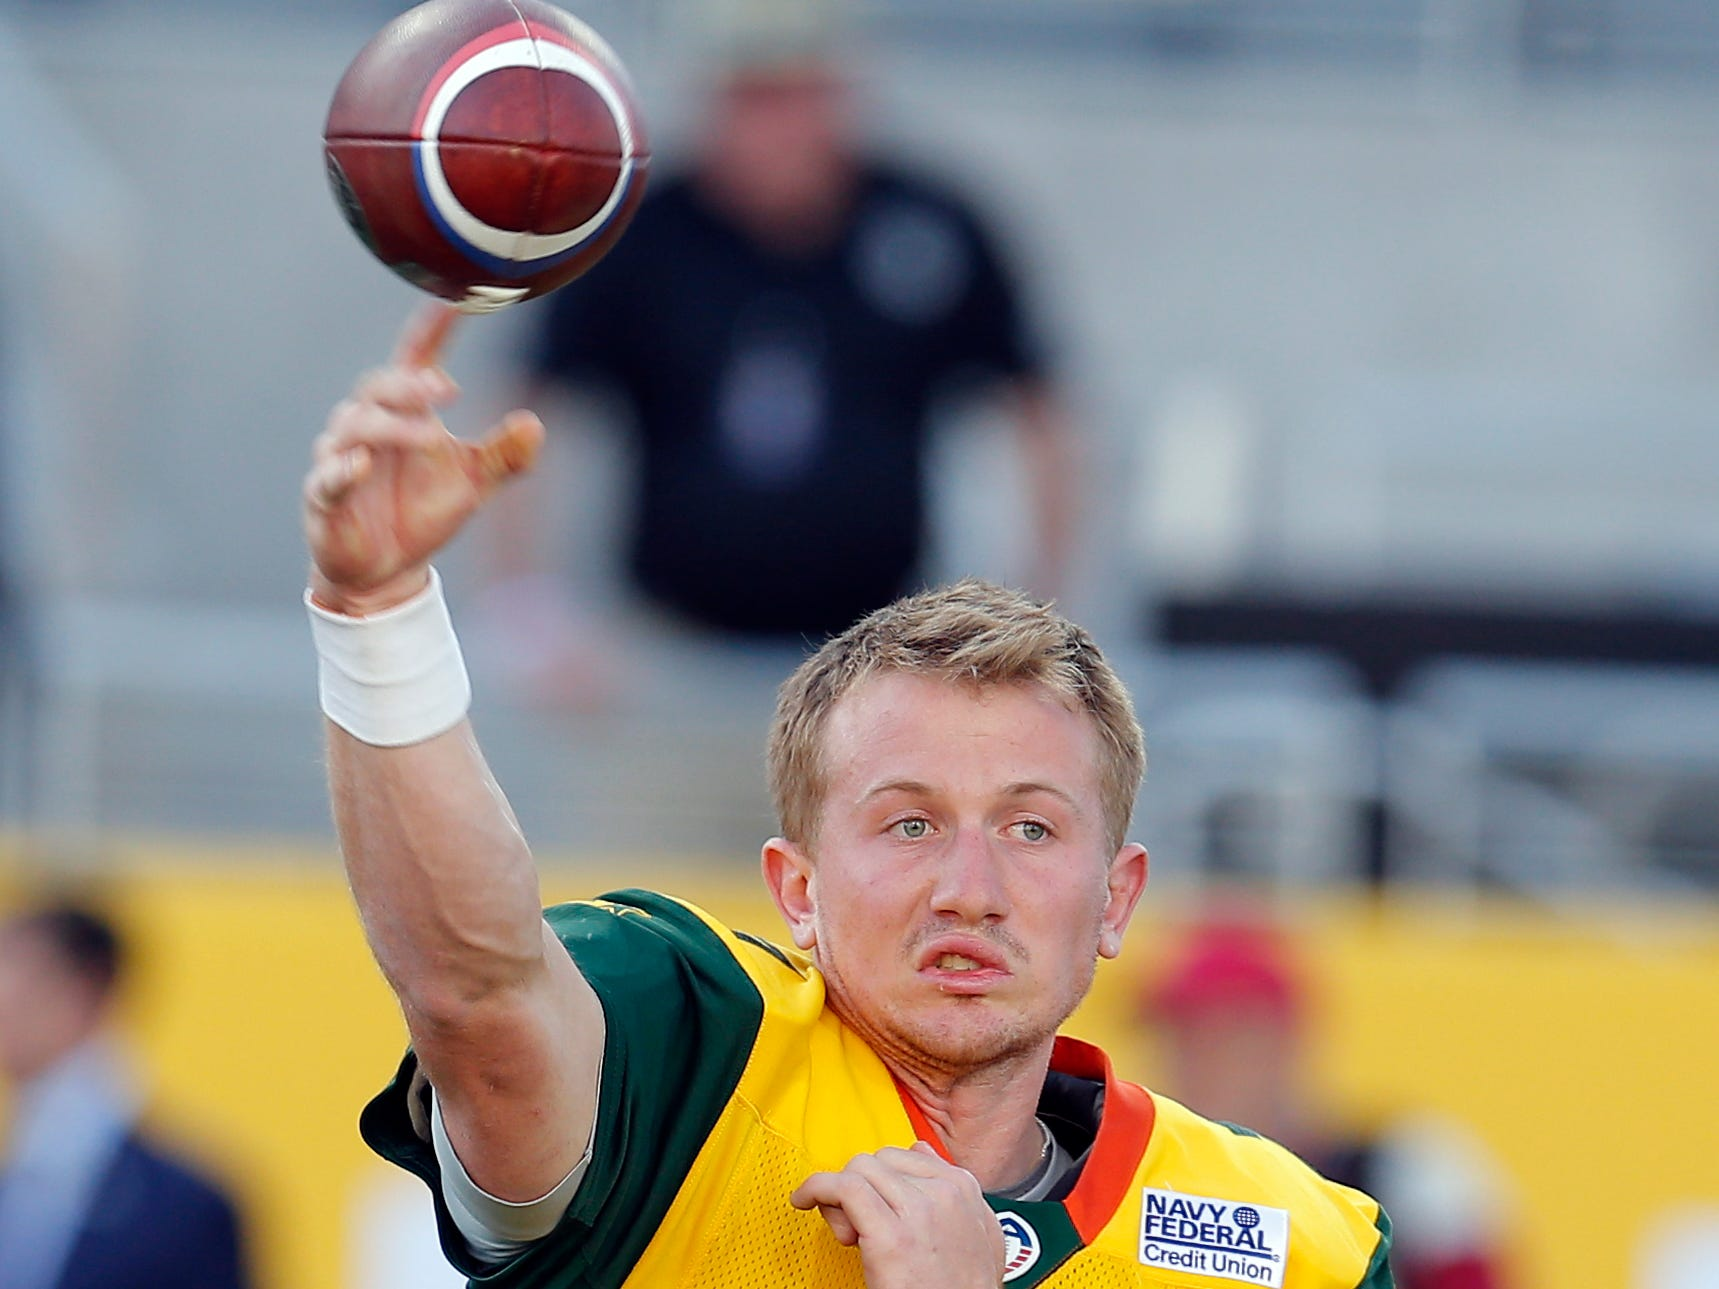 Arizona Hotshots quarterback John Wolford (7) warms up before an AAF football game against the Atlanta Legends, Sunday, March 3, 2019, at Sun Devil Stadium in Phoenix.